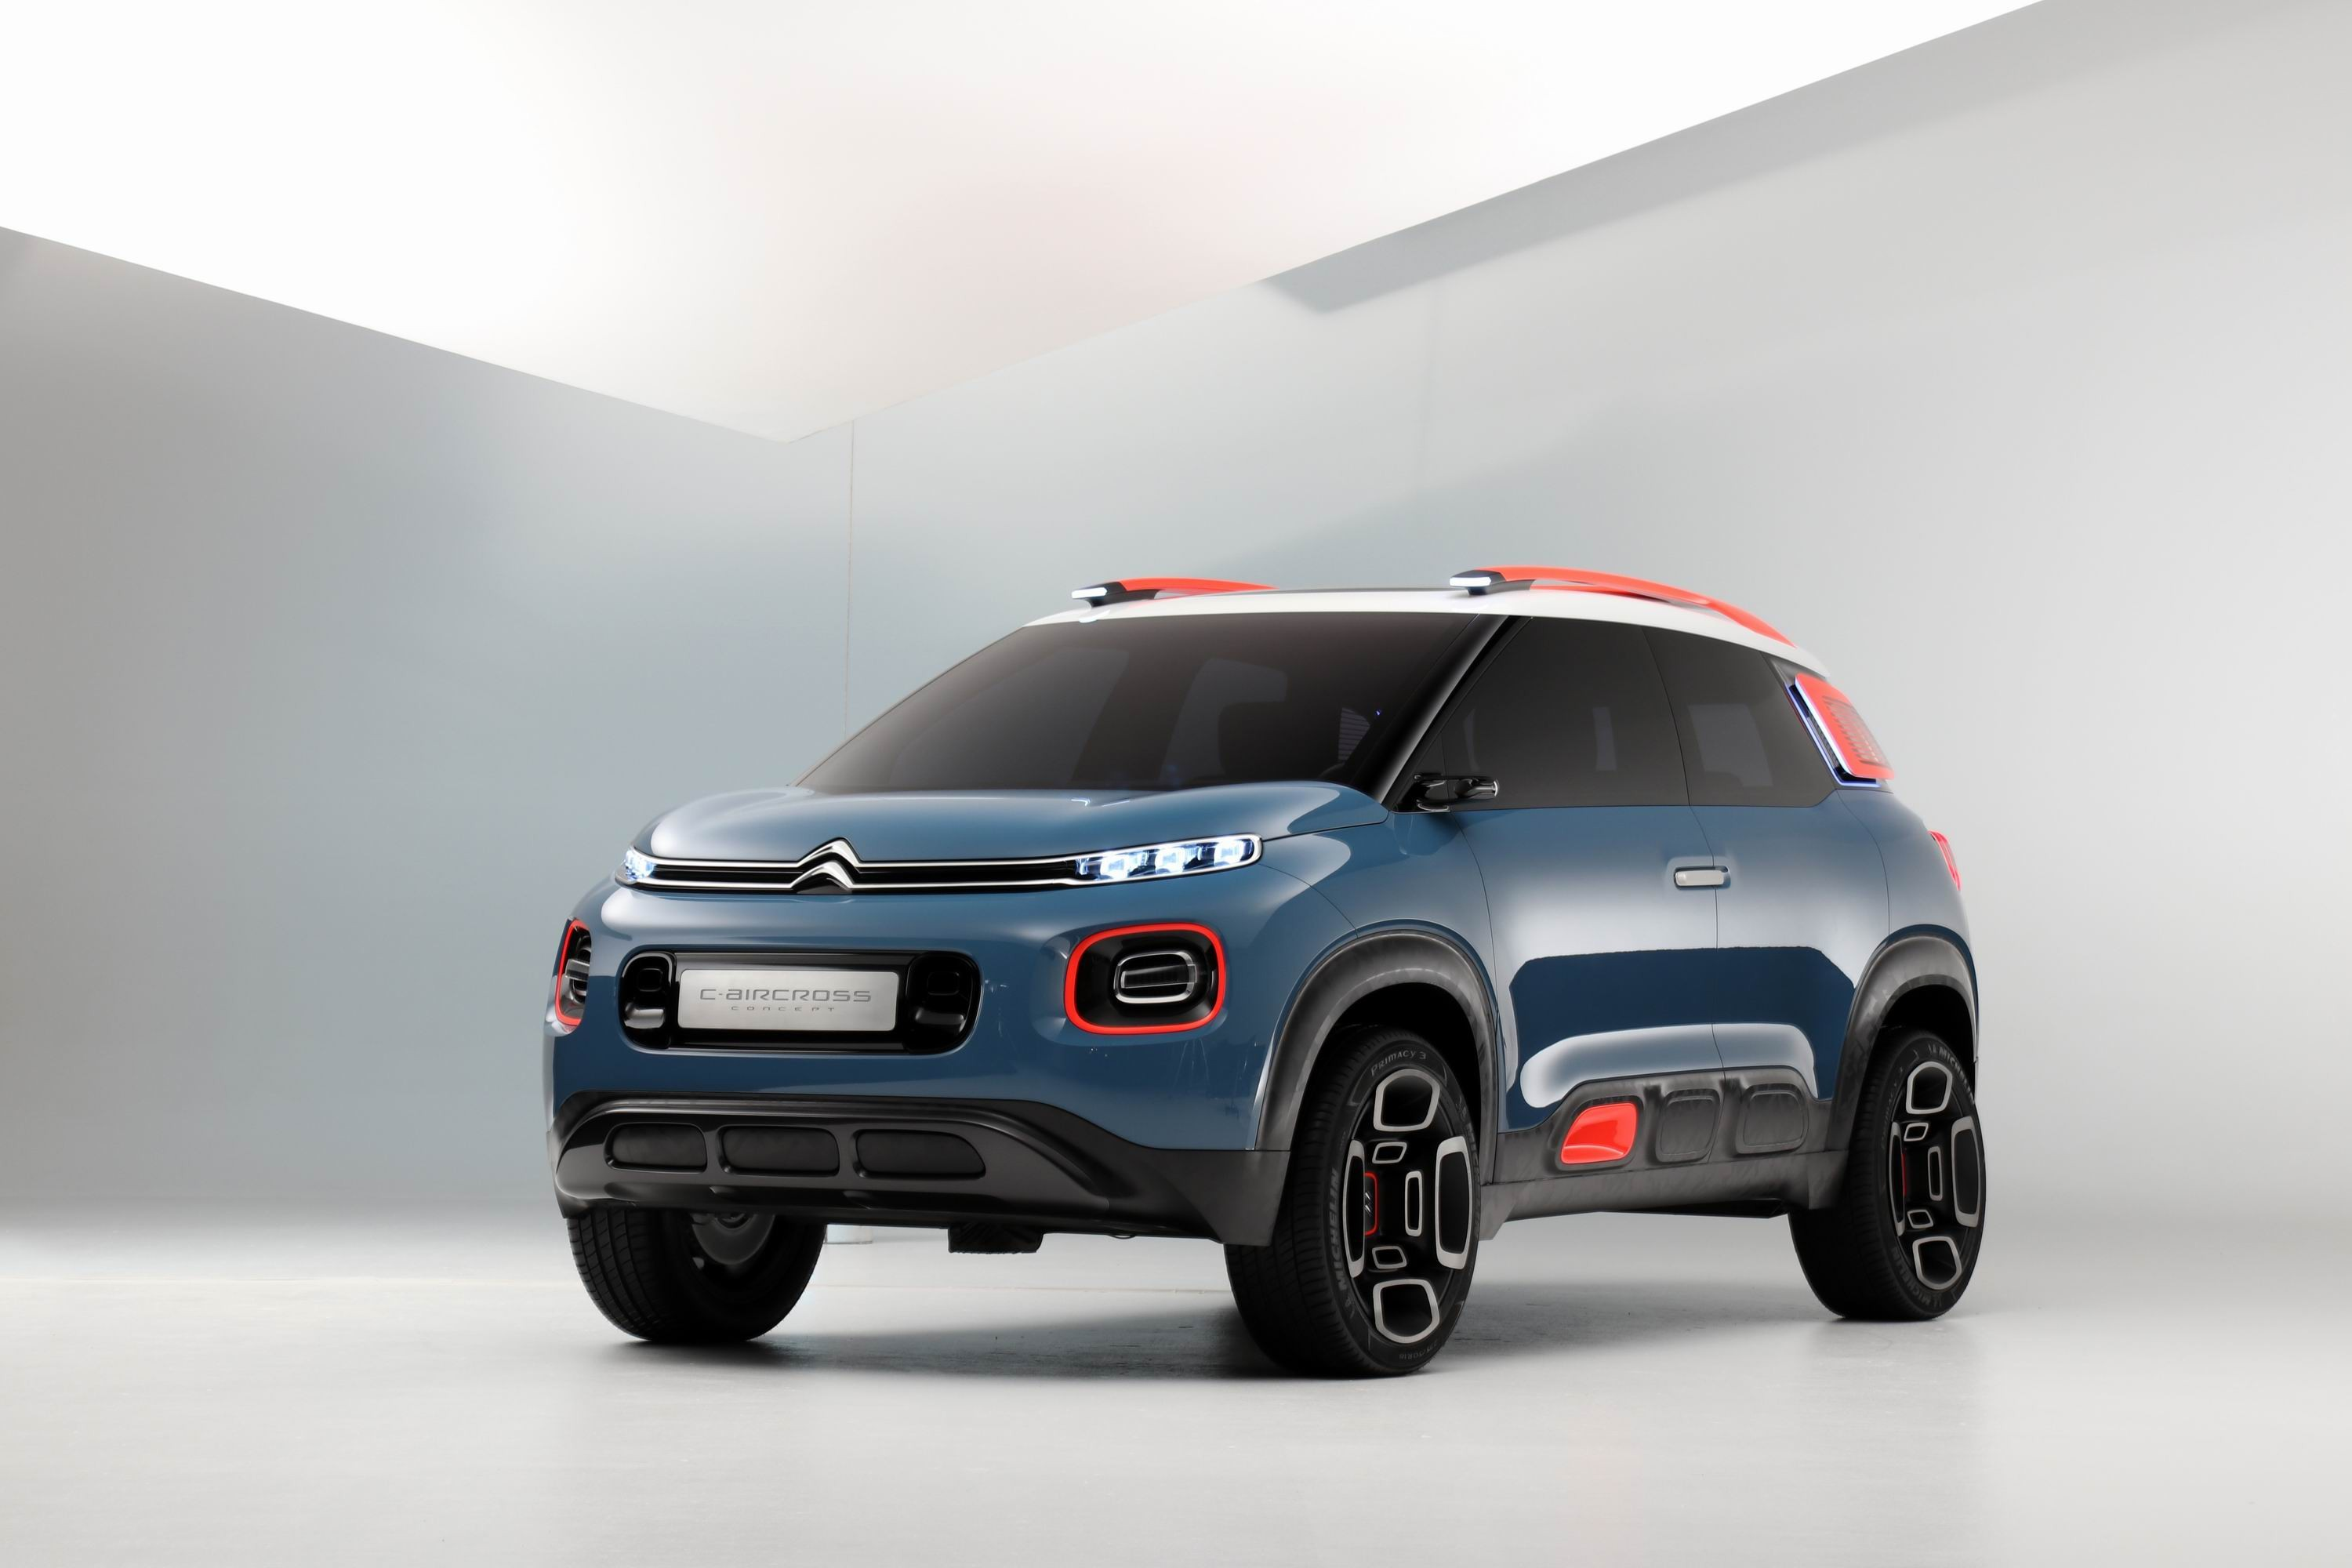 wallpaper citroen c5 aircross shanghai auto show 2017 concept blue cars bikes 13395. Black Bedroom Furniture Sets. Home Design Ideas